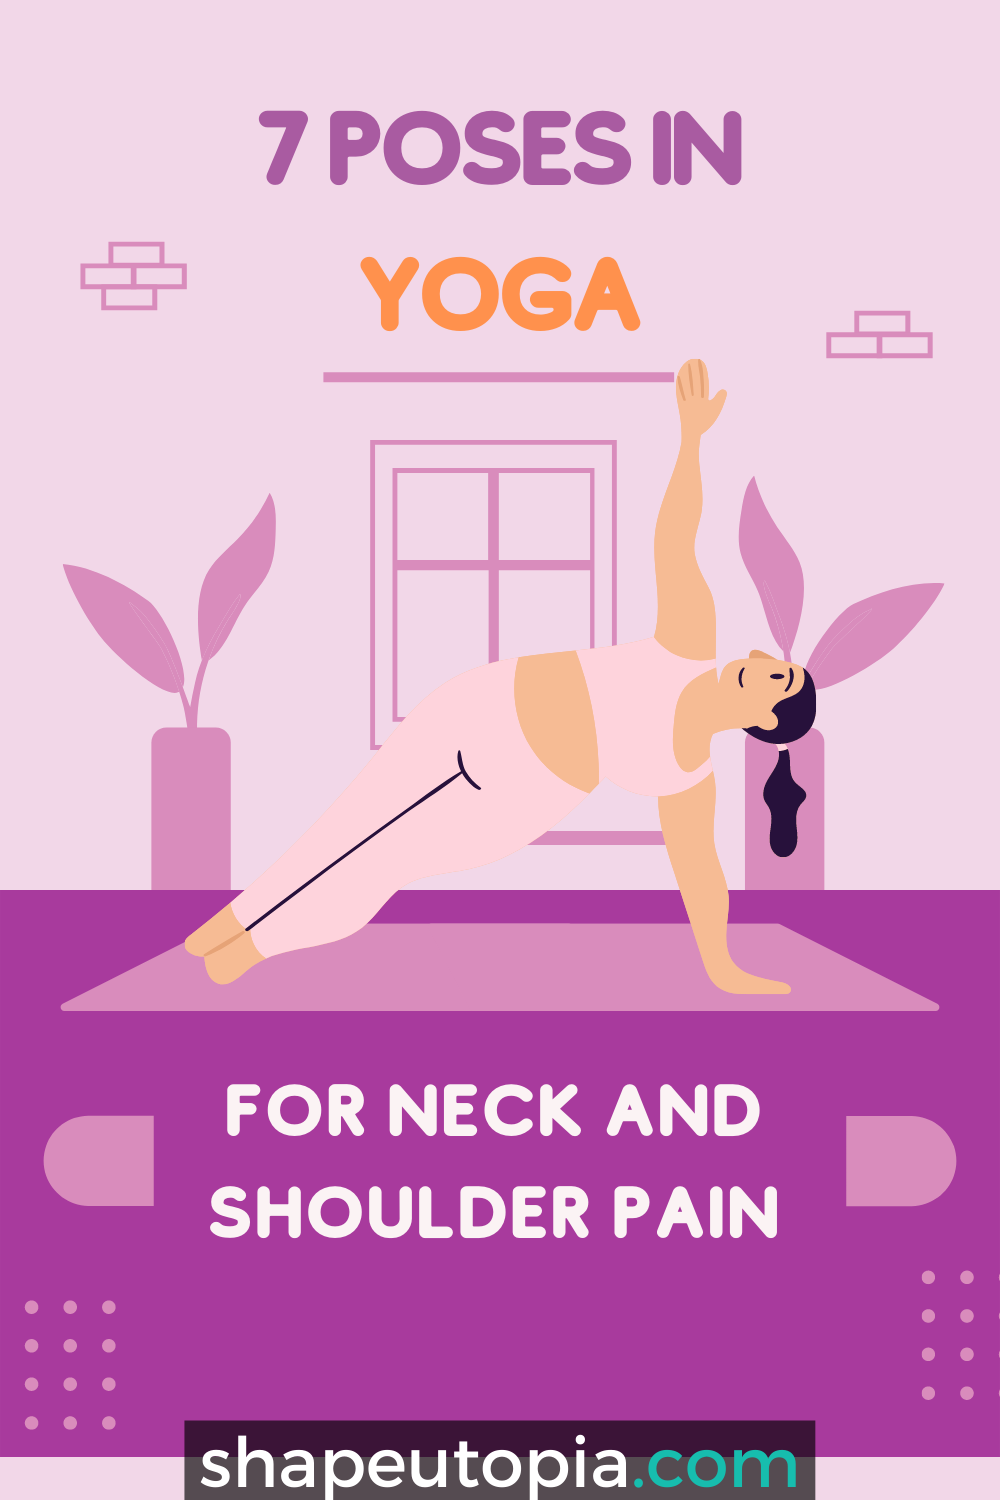 7 Poses in Yoga for Neck and Shoulder Pain